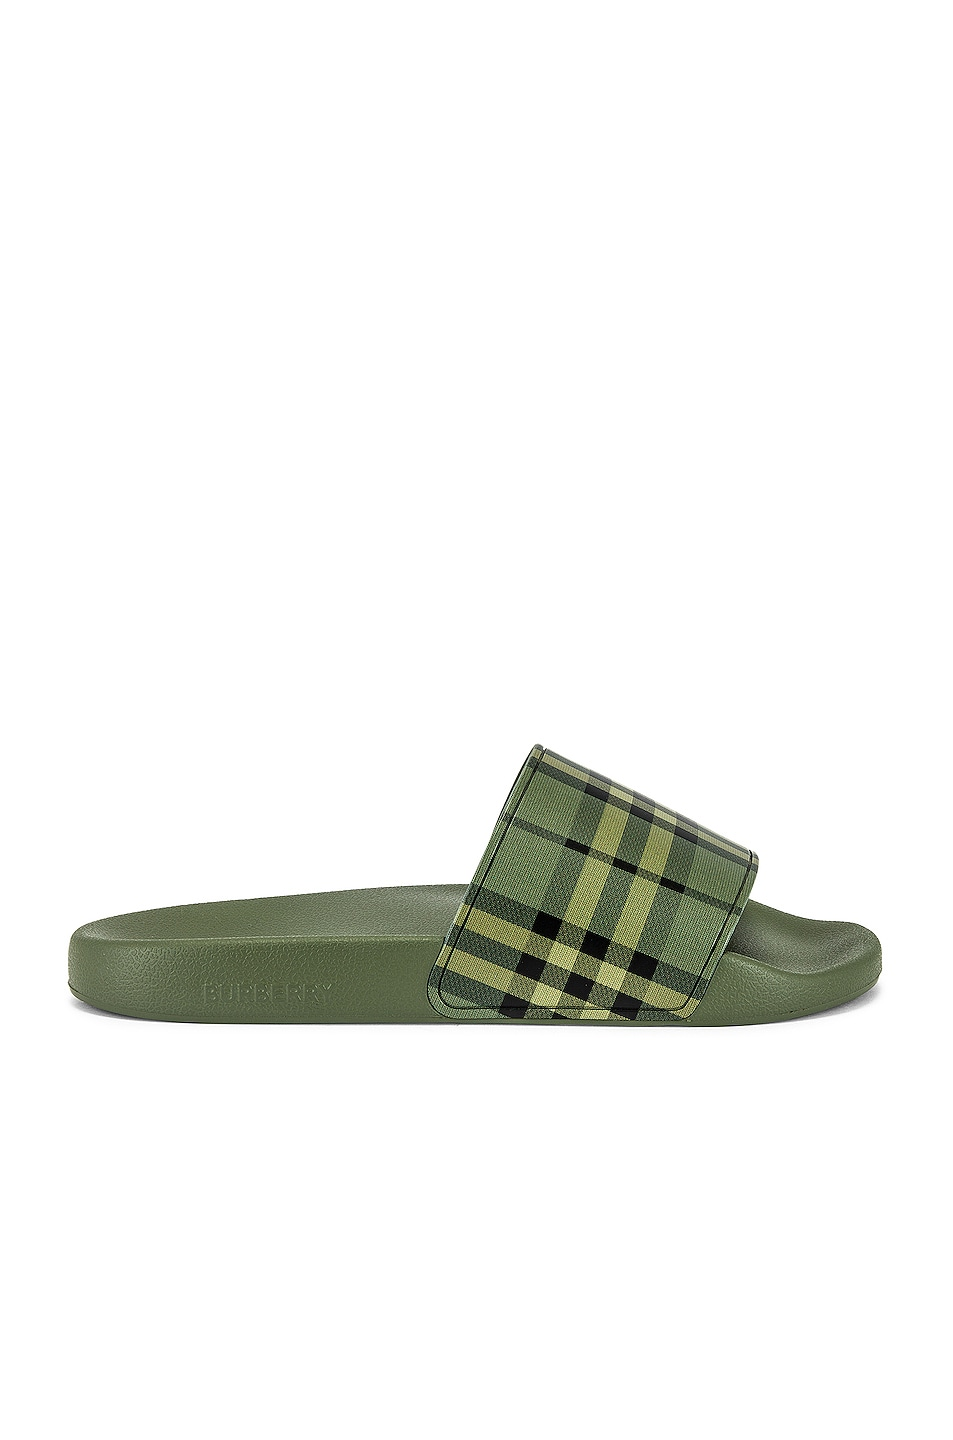 Image 1 of Burberry Furley Slide Sandal in Military Green